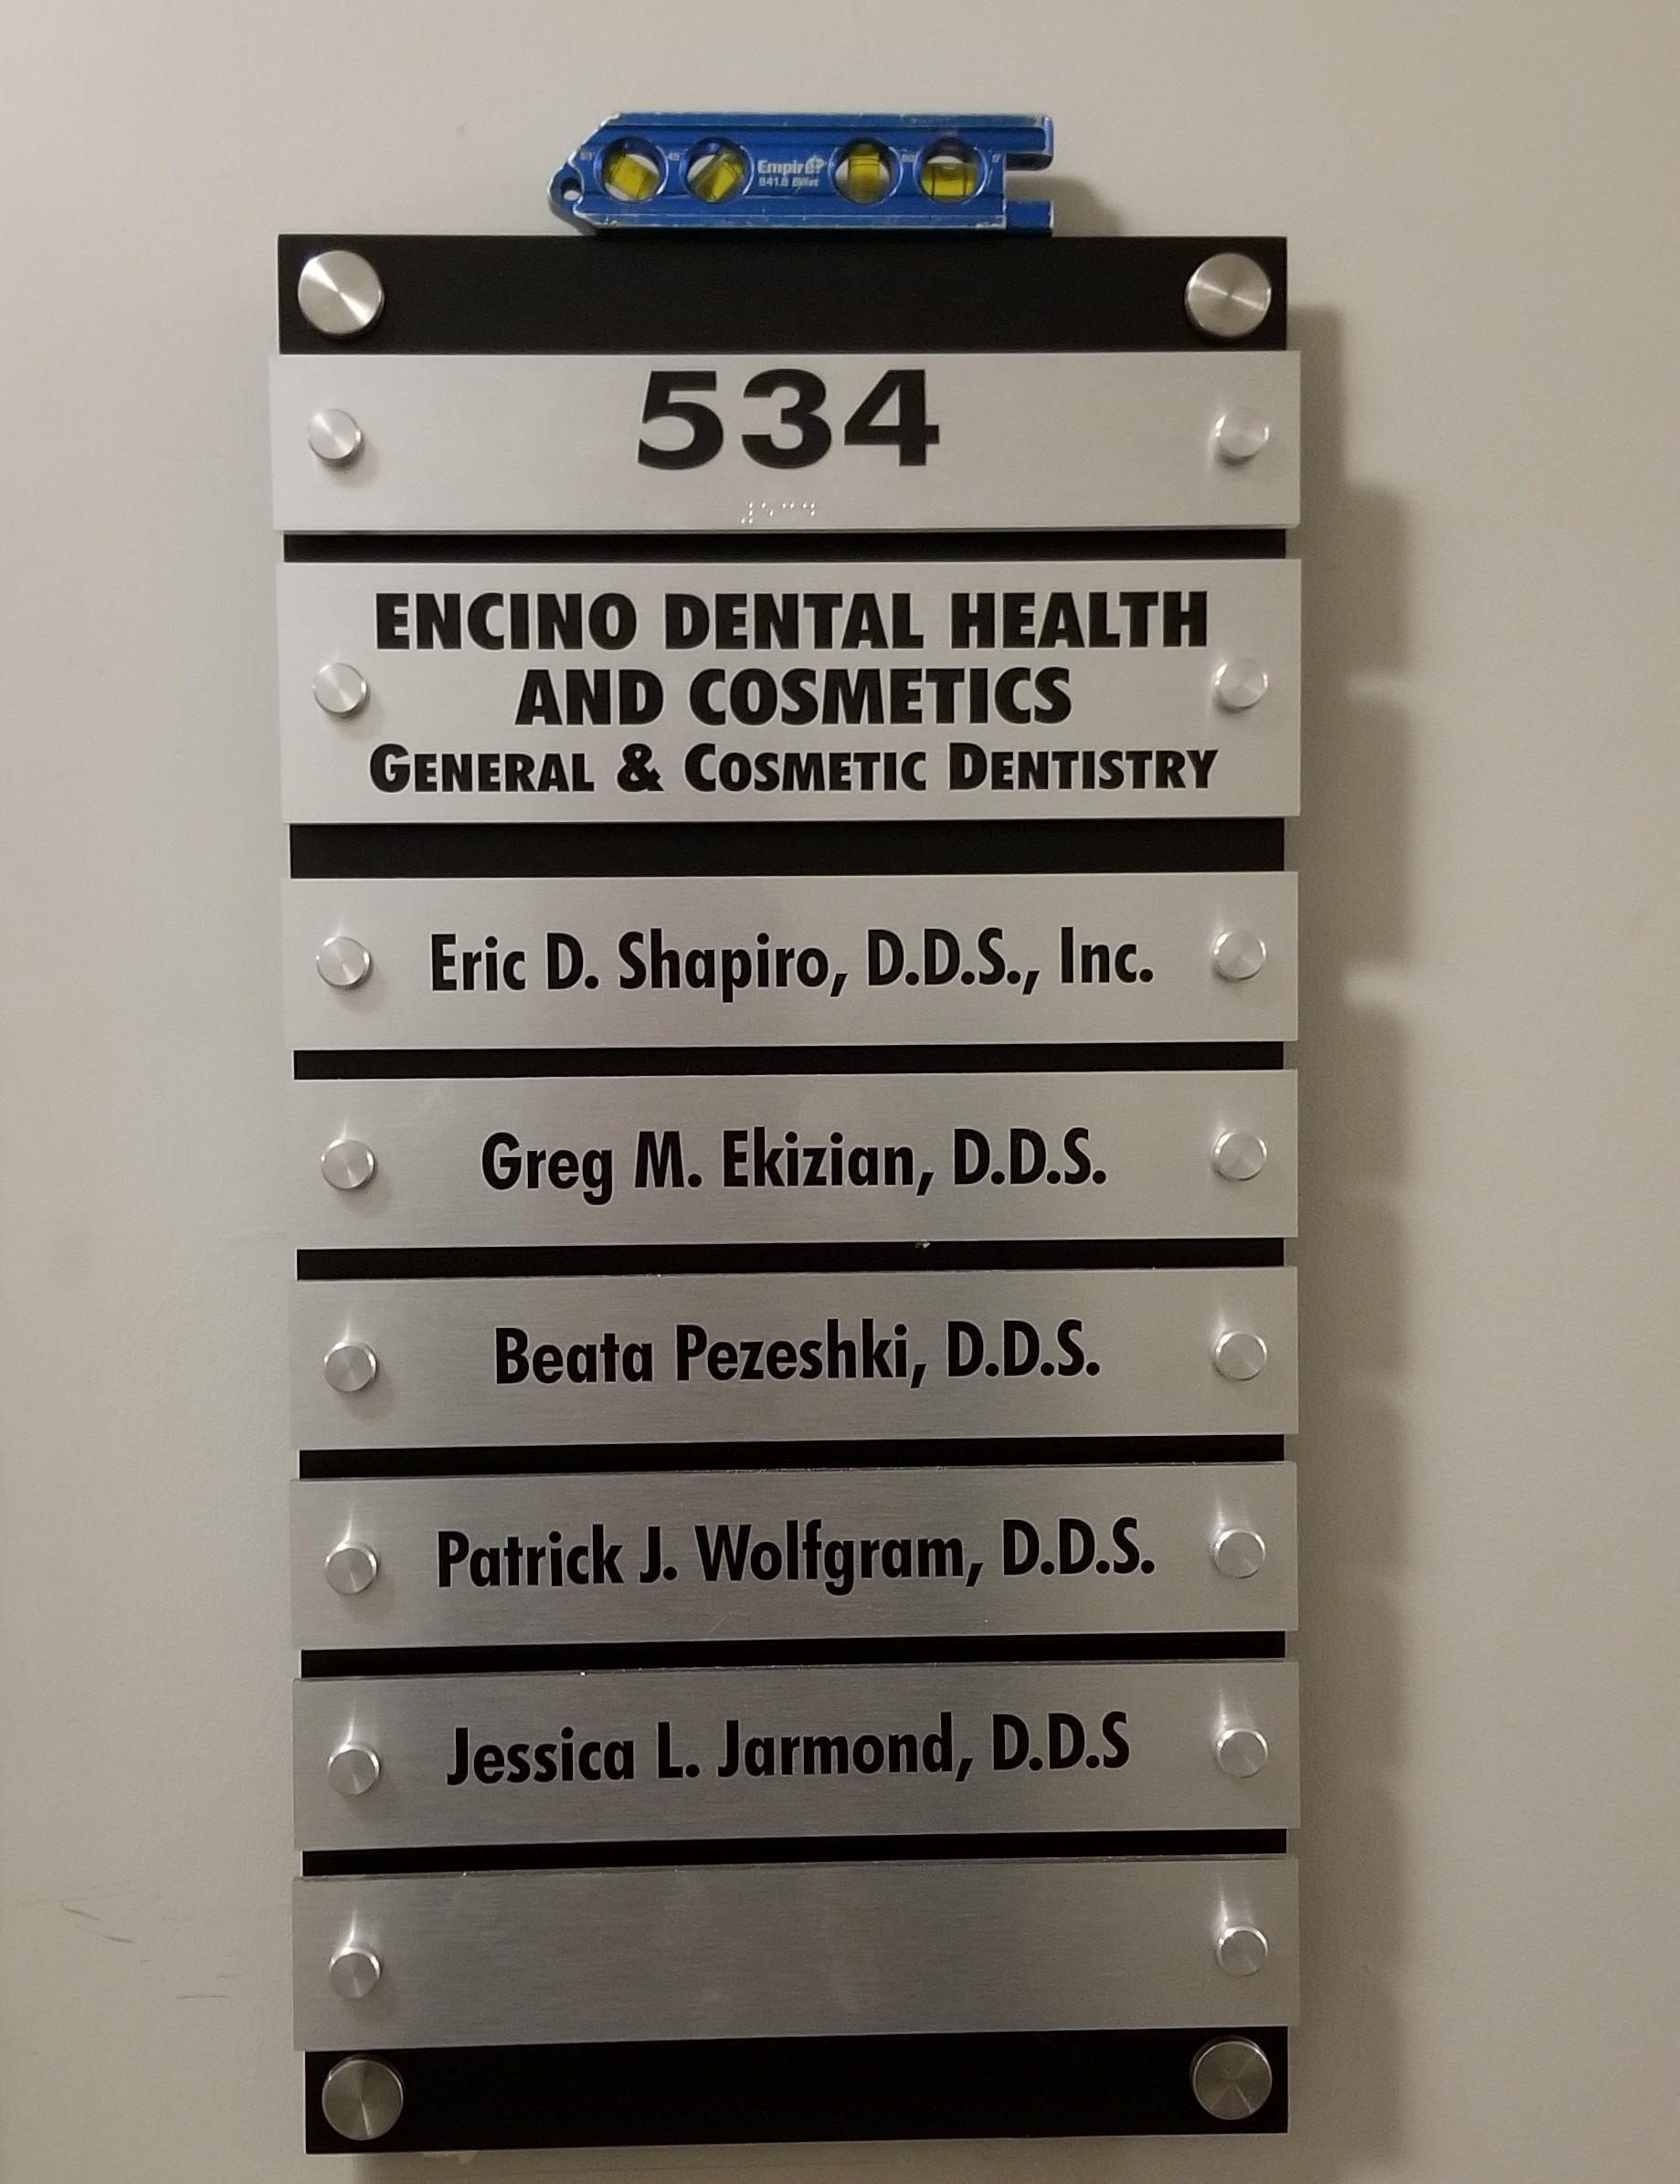 Indoor medical office signs give useful directions to patients and employees alike.